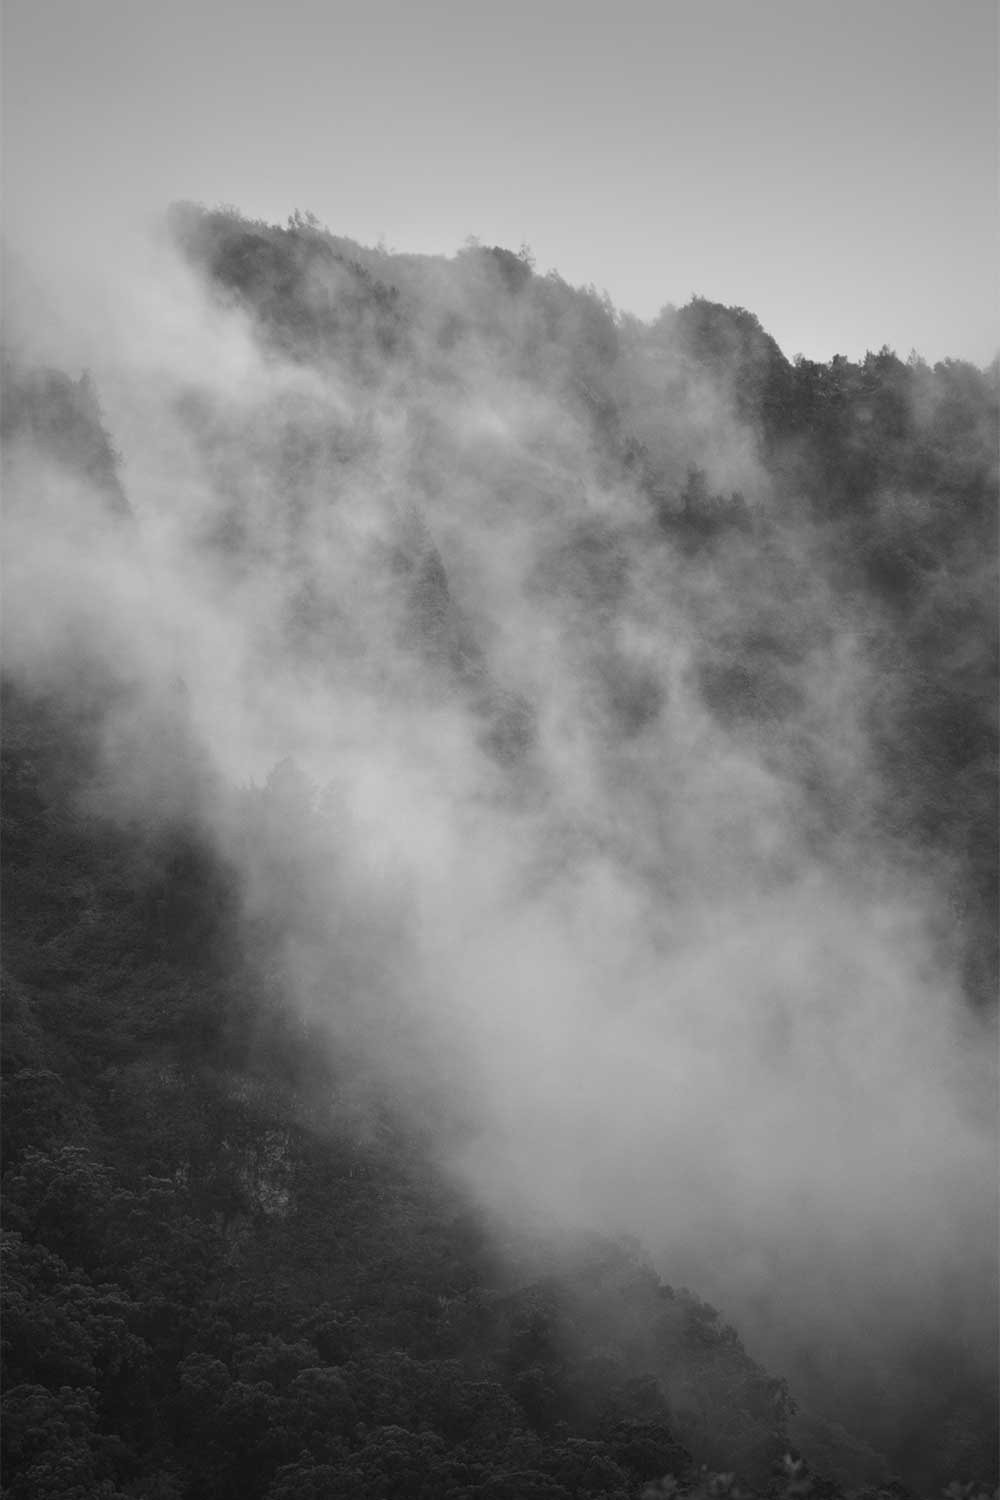 Black and white image of the Koolau mountain range covered in mist